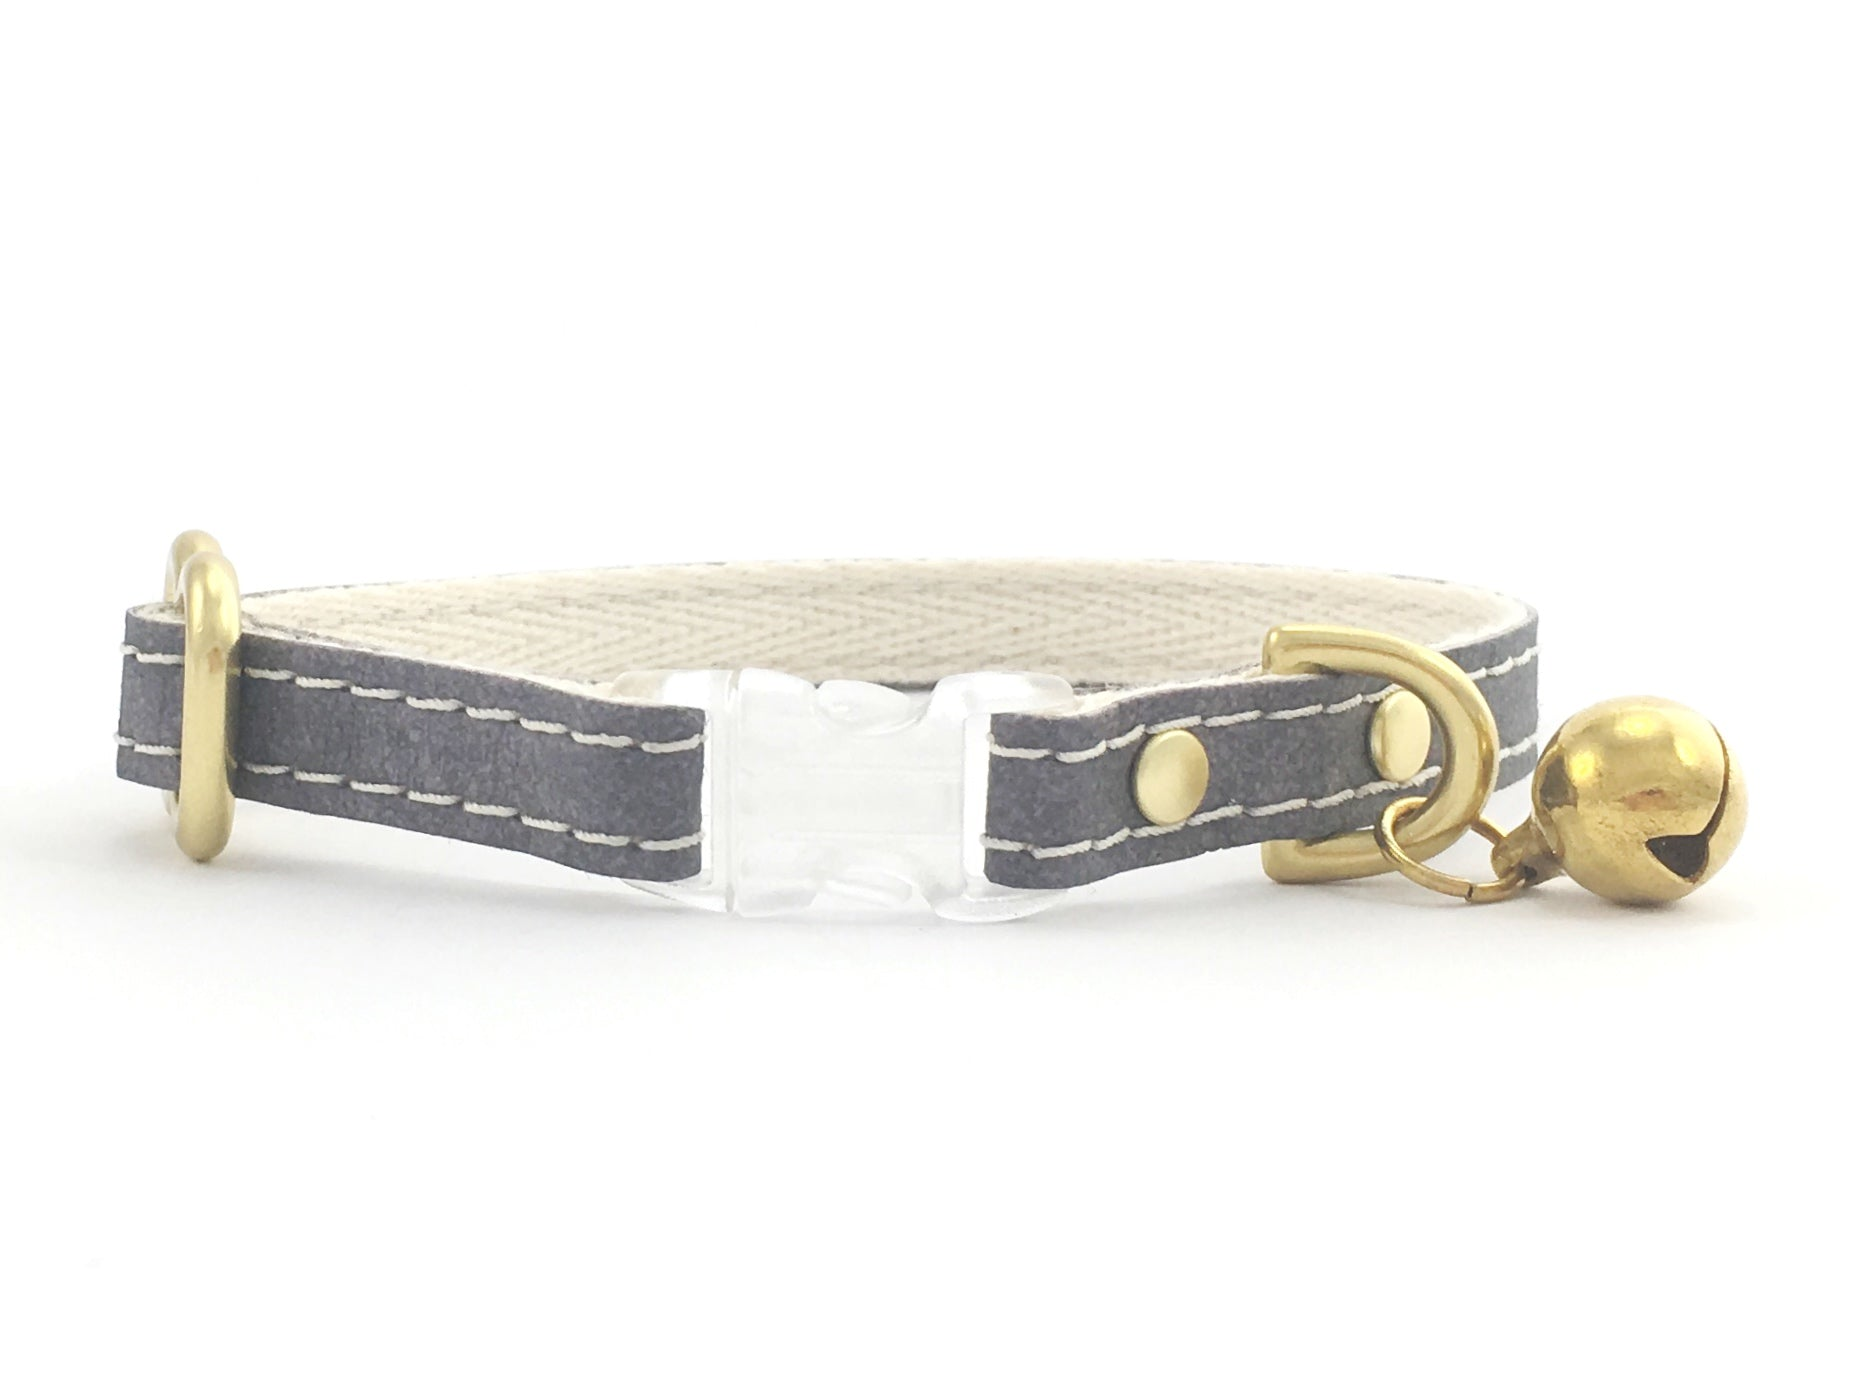 Luxury vegan leather cat collar with breakaway safety buckle and brass bell